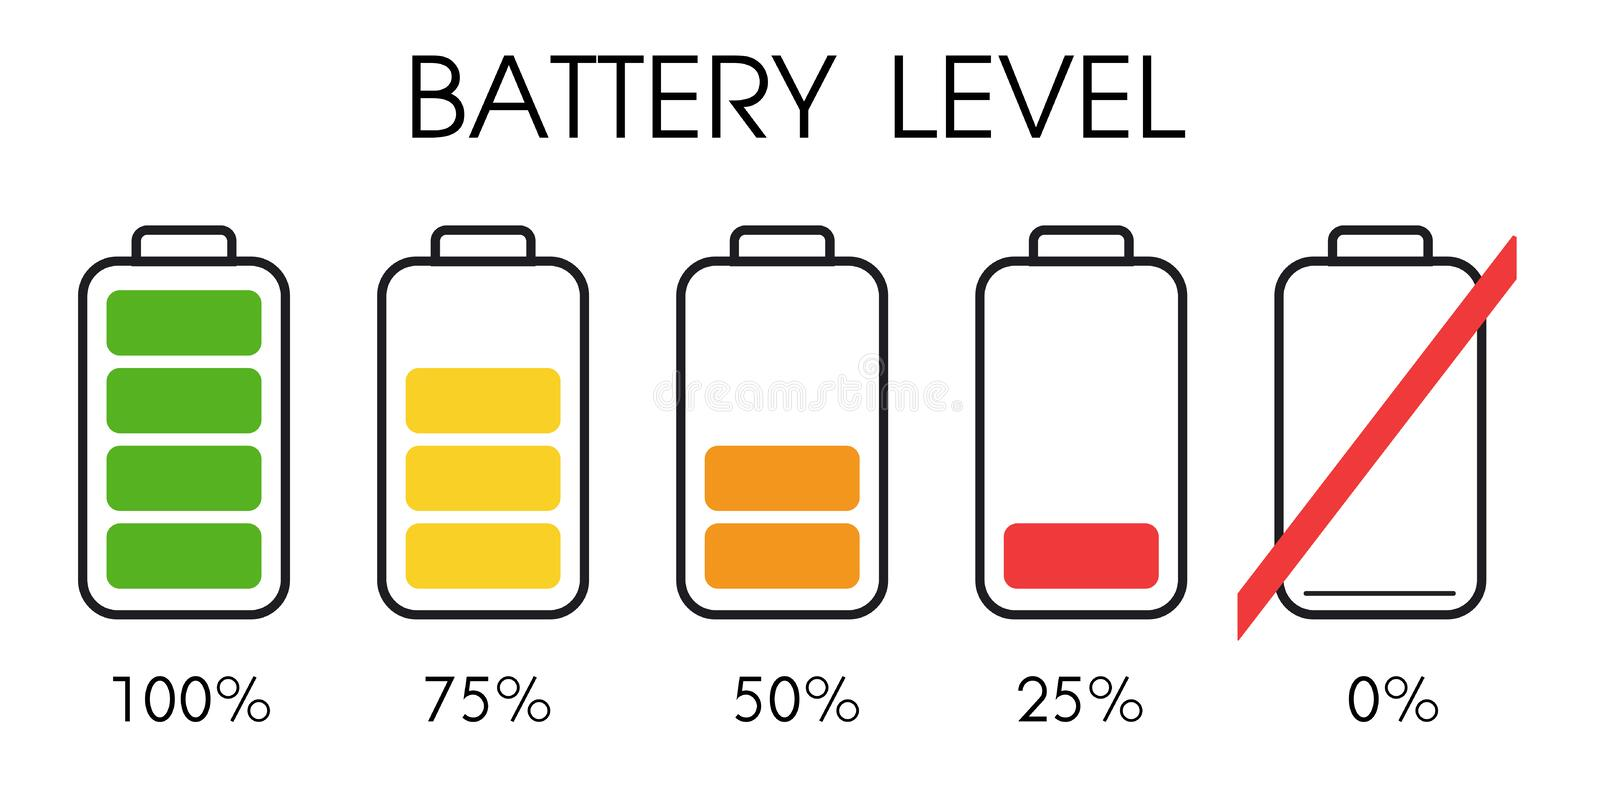 Power level icon on the smartphone battery stock illustration